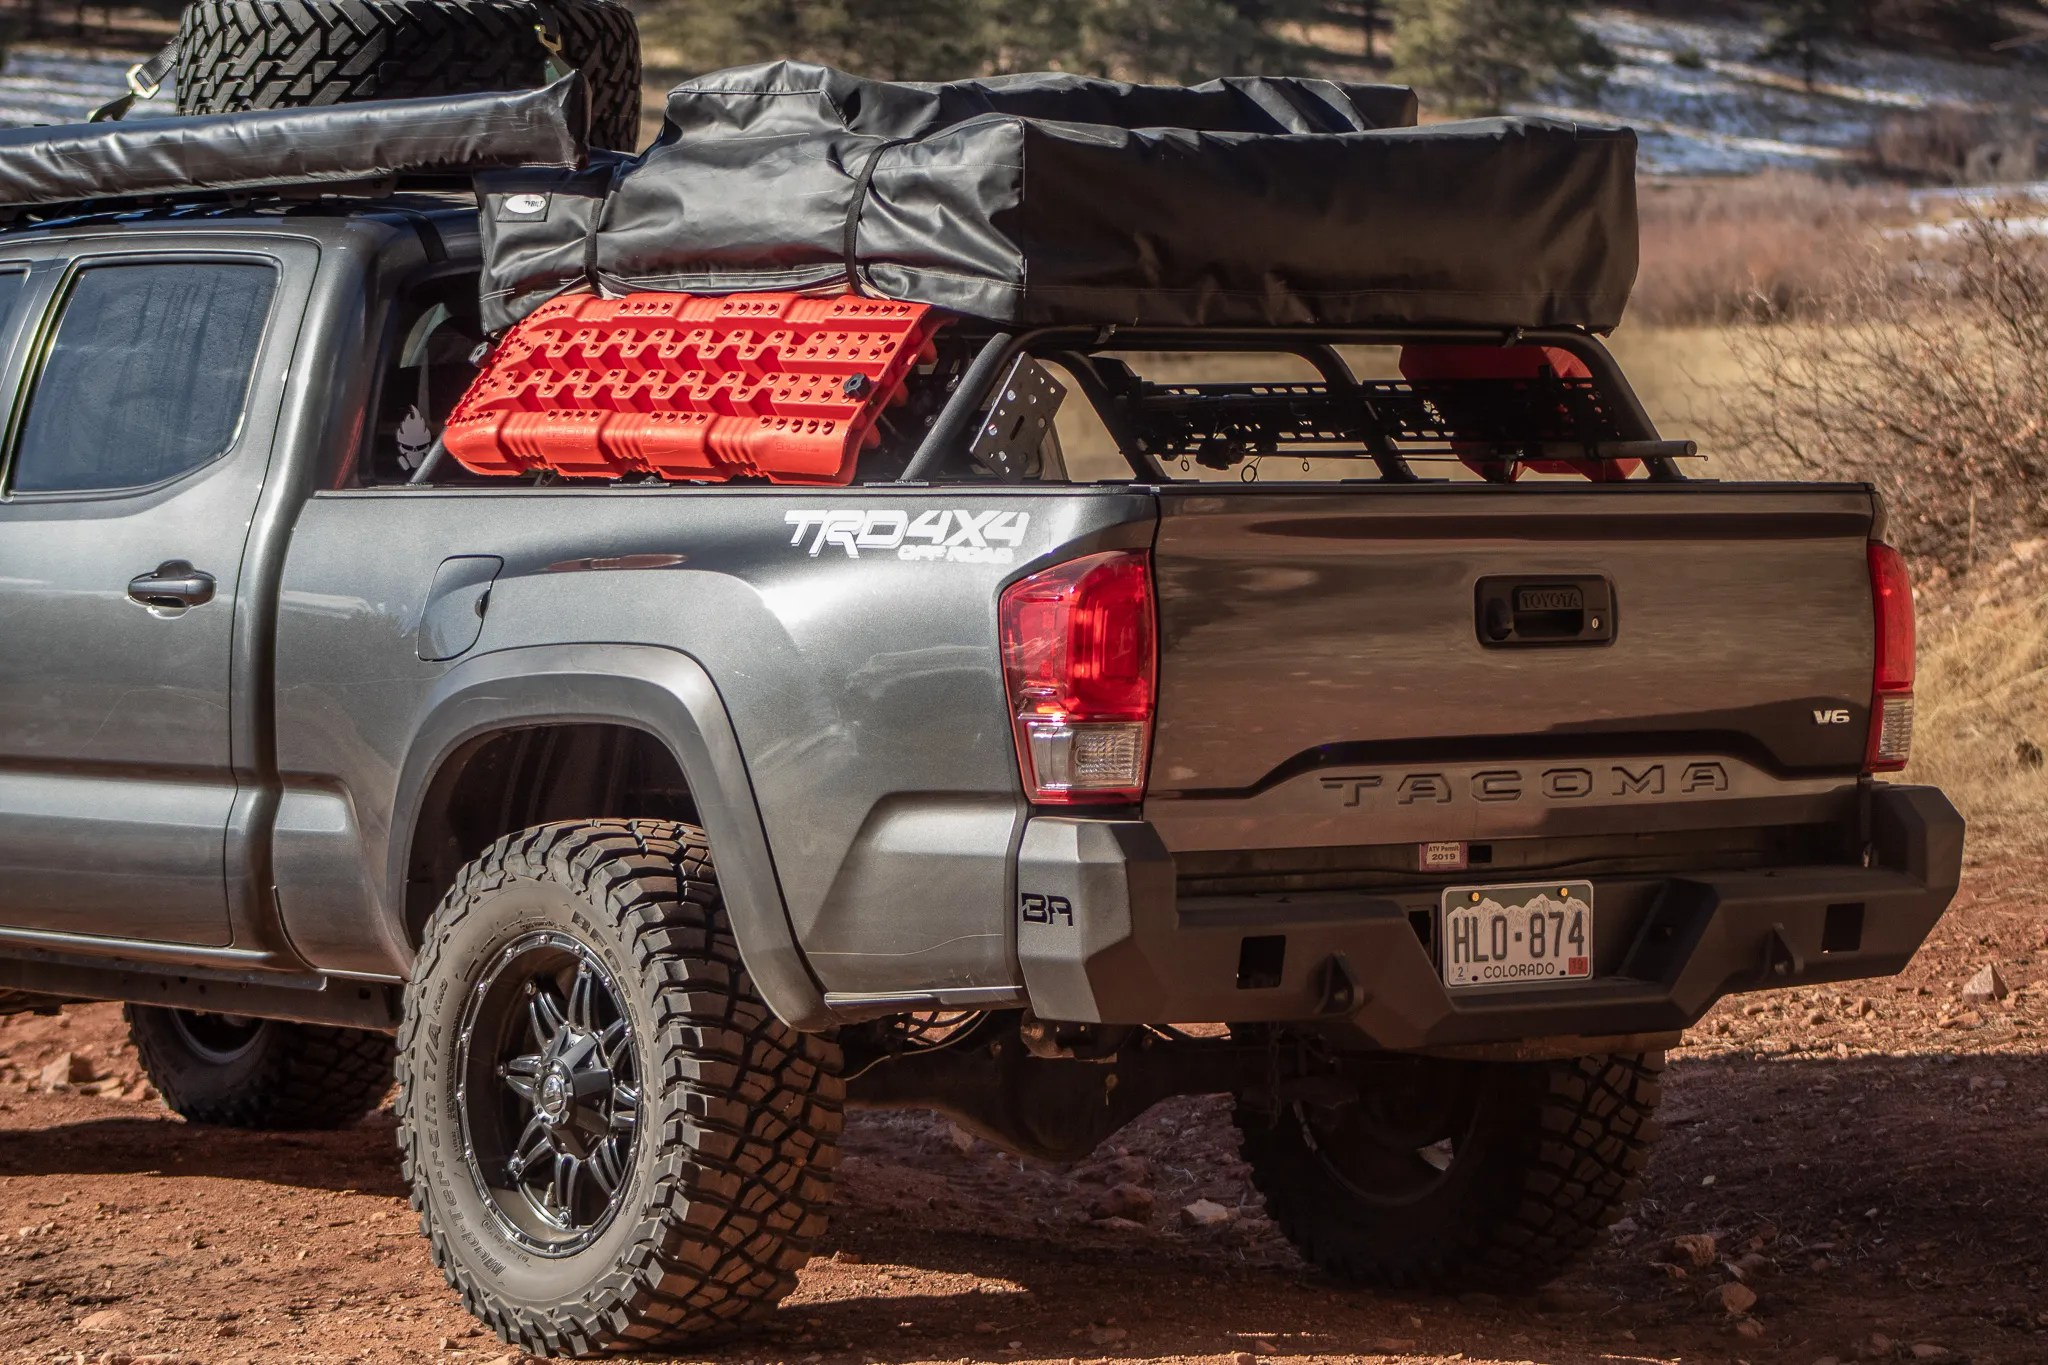 2005 toyota tacoma mid height bed rack